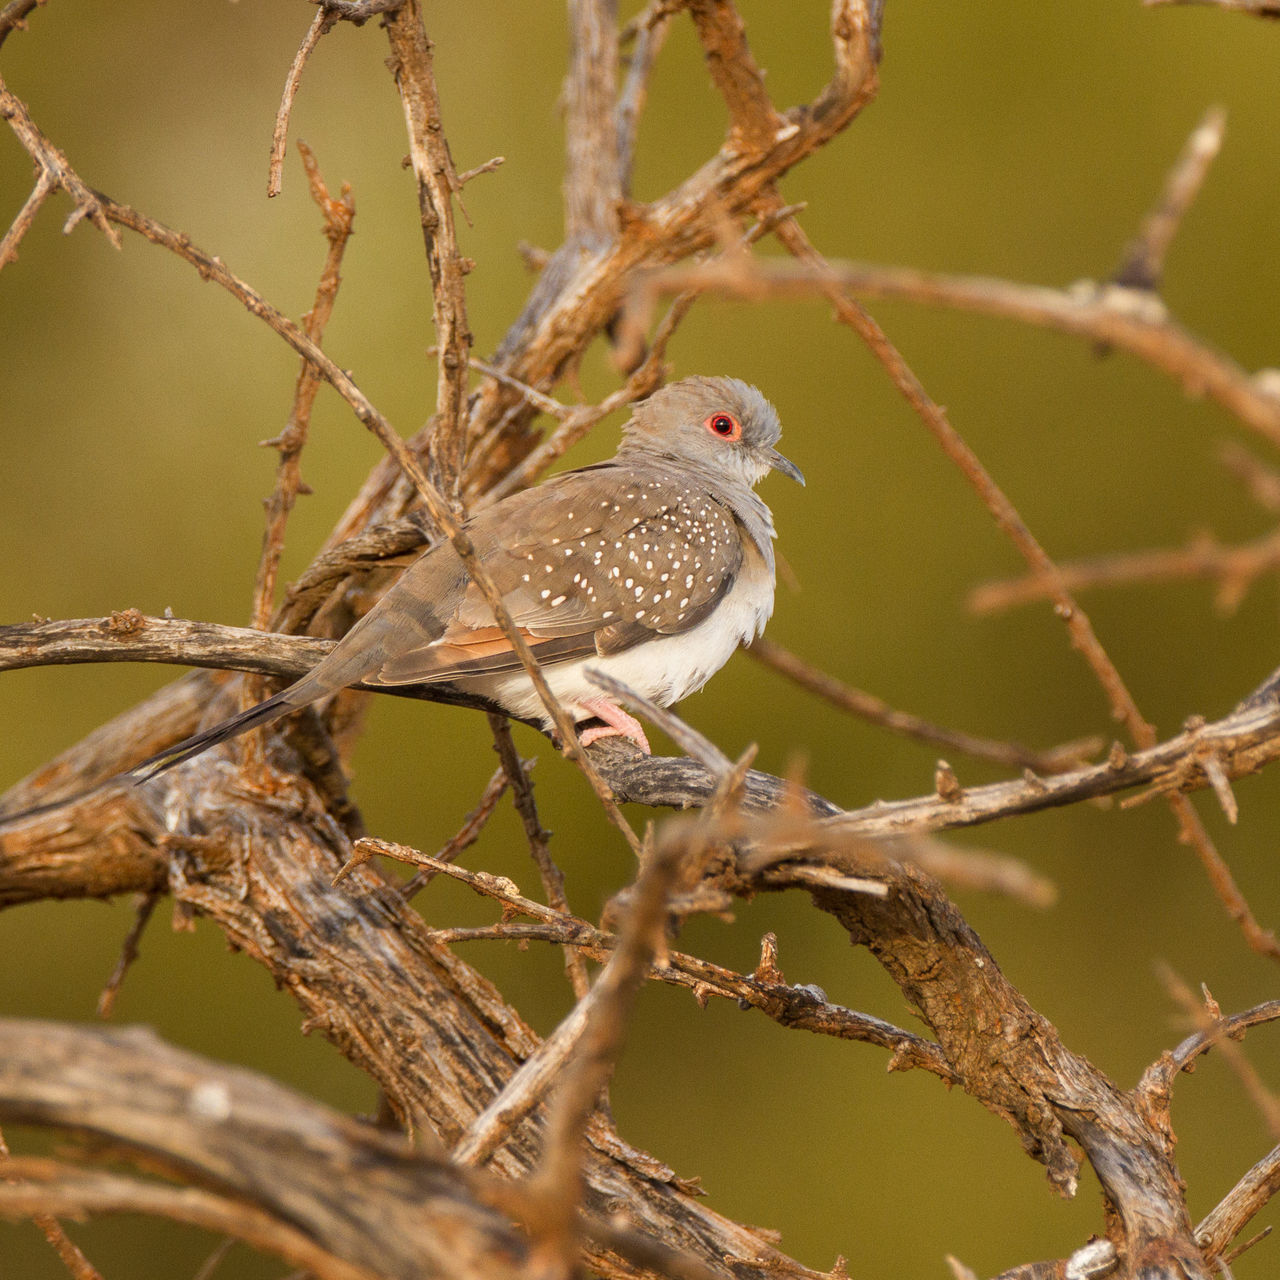 Animal Themes Animal Wildlife Animals In The Wild Beauty In Nature Bird Bird Photography Diamond Dove Geopelia Cuneata Nature Nature Photography No People One Animal Perching Wildlife & Nature Wildlife Photography